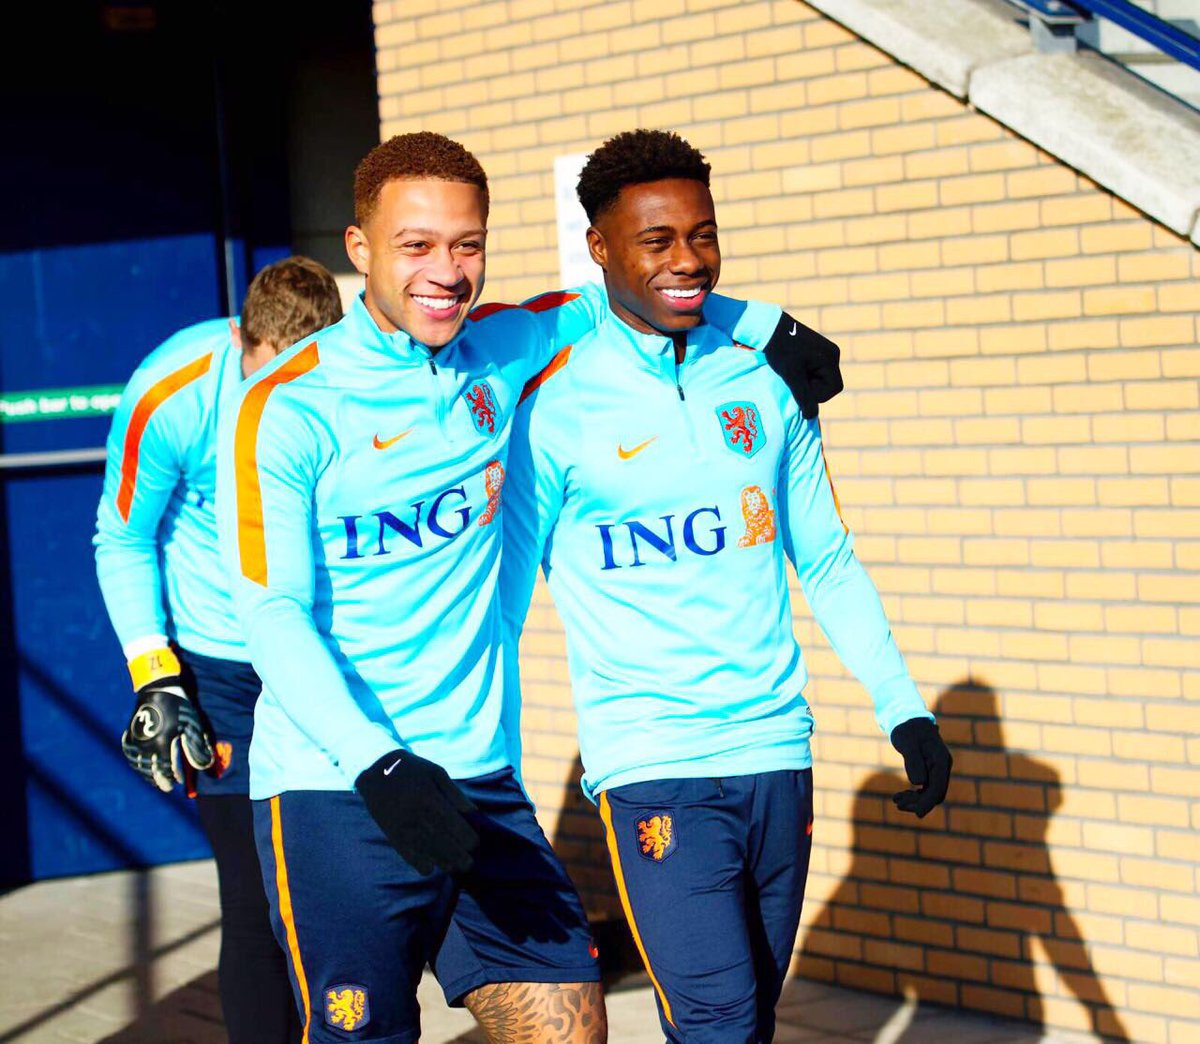 When your best friend is also your colleague, only smiles 😁 @Memphis https://t.co/Ev24SAE9Yj